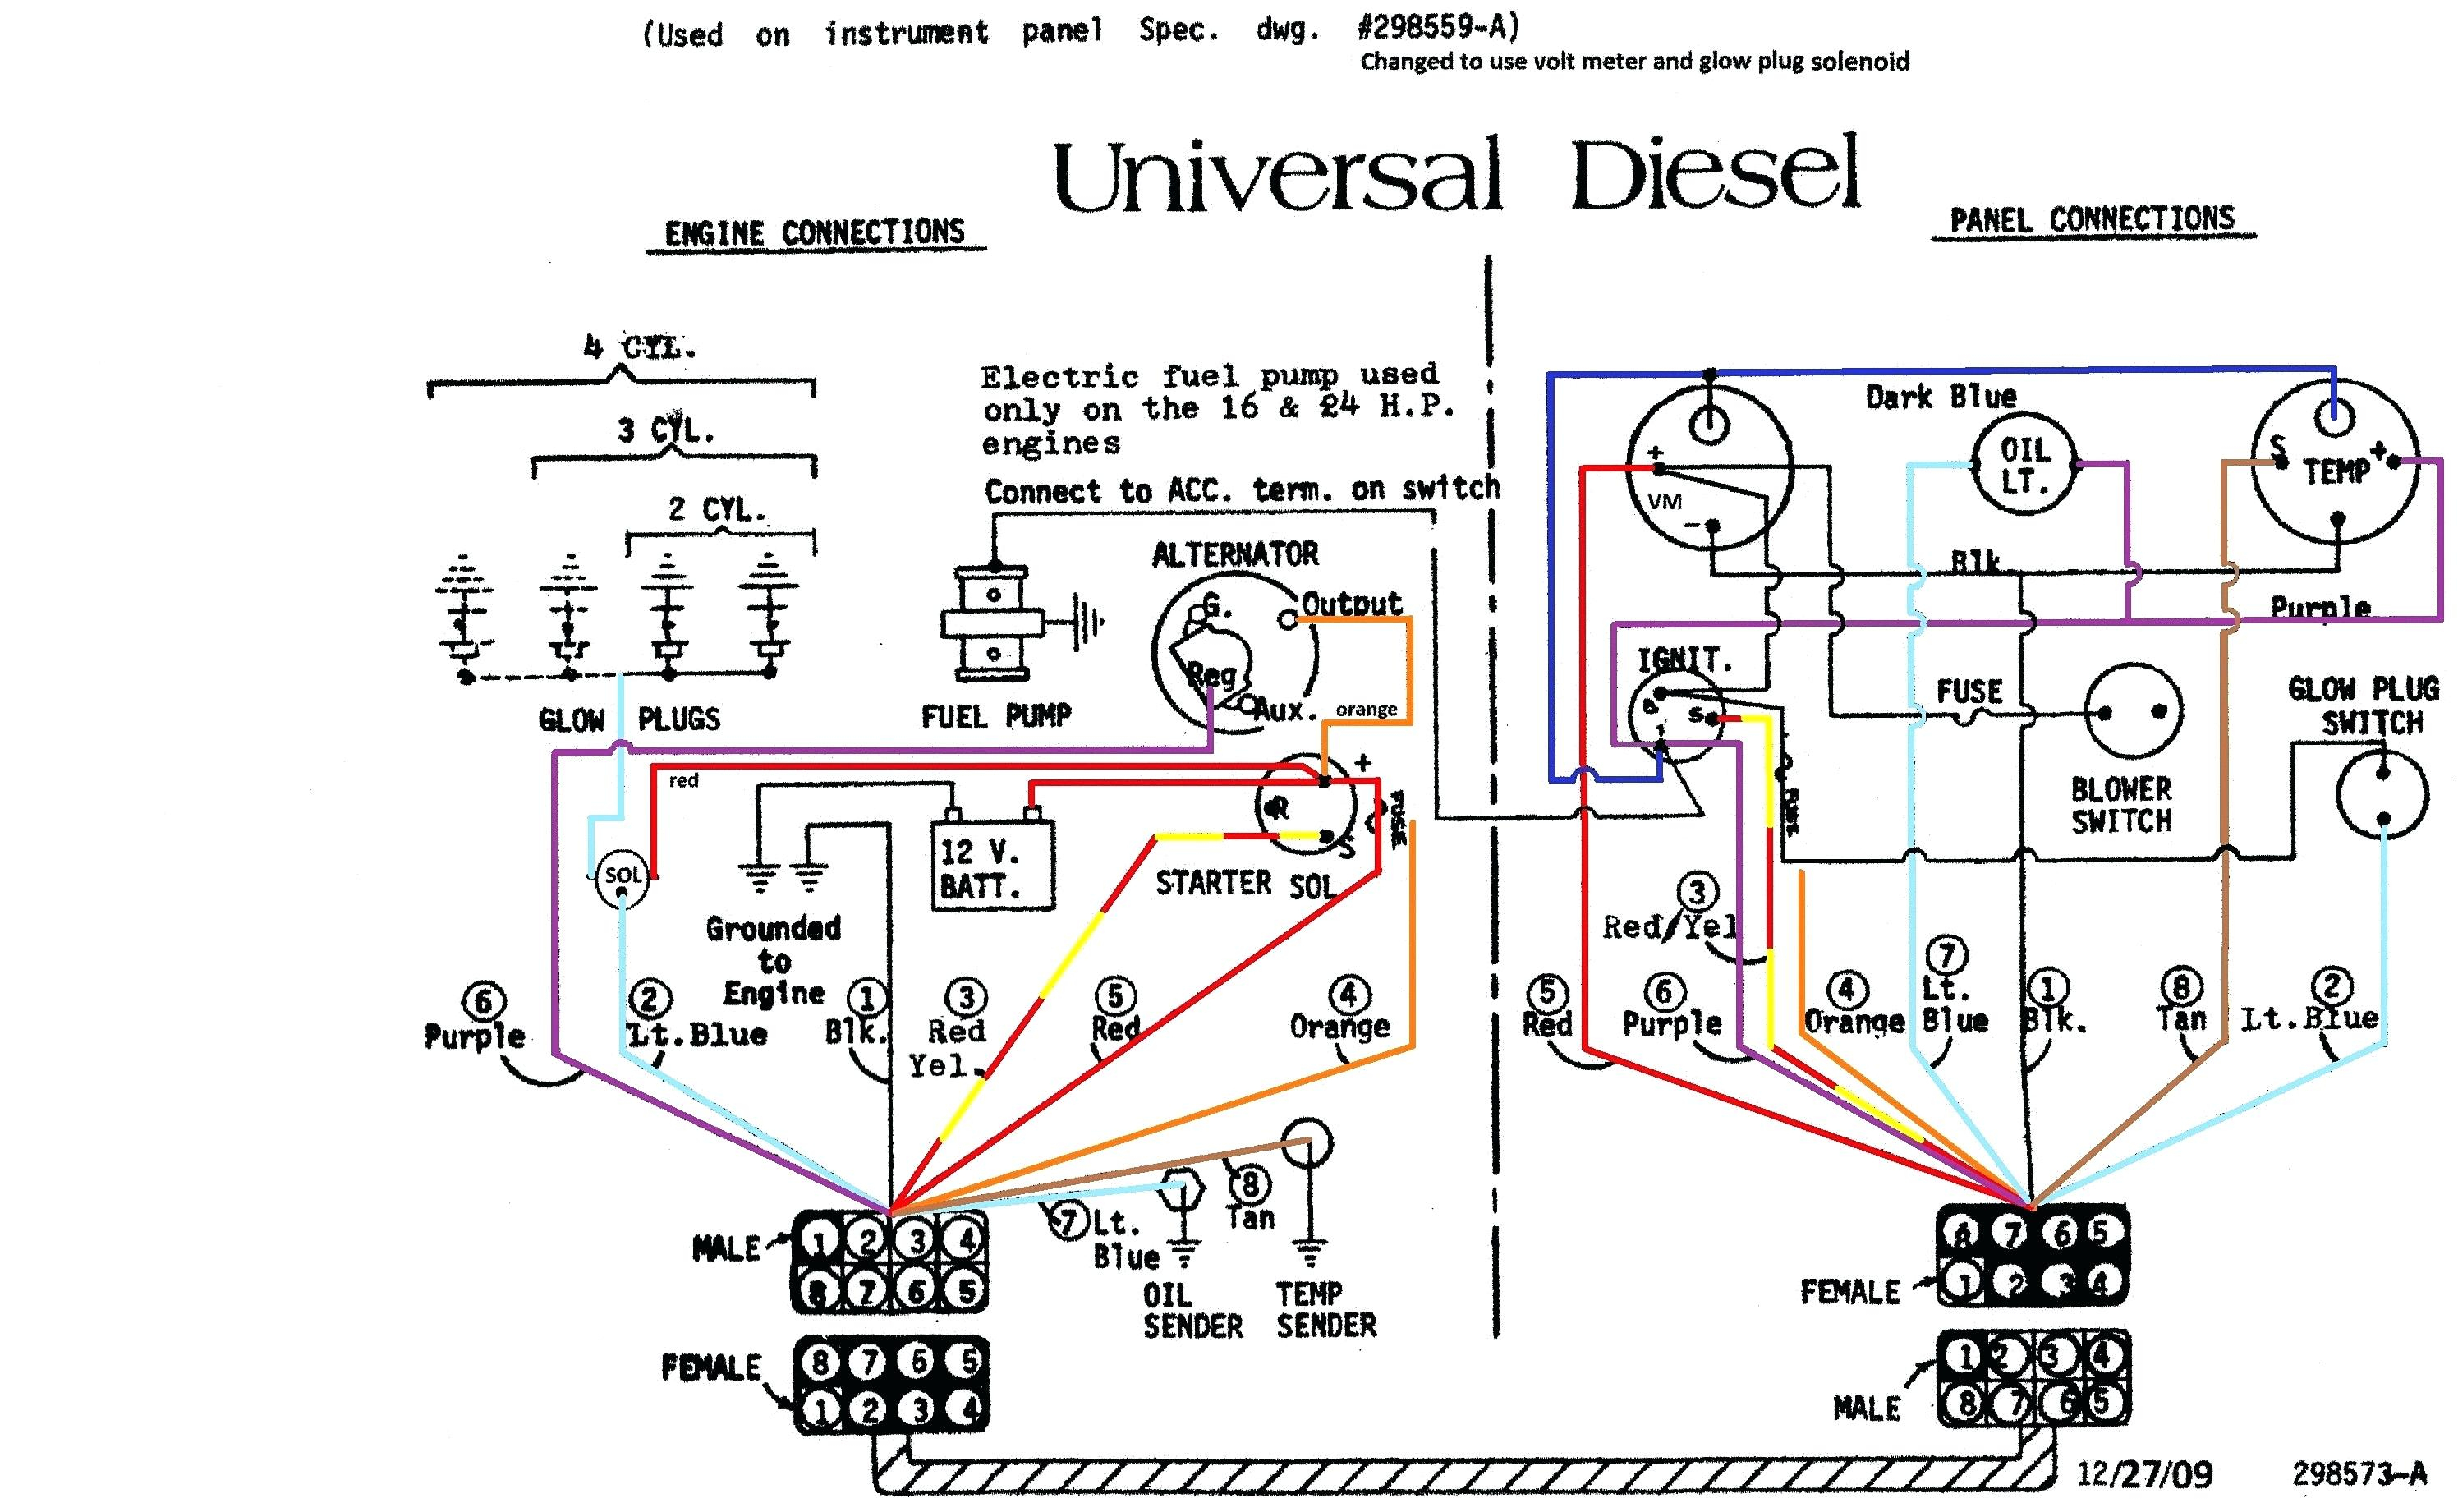 7 Pin Wiring Diagram For Trailer Plug from 2020cadillac.com